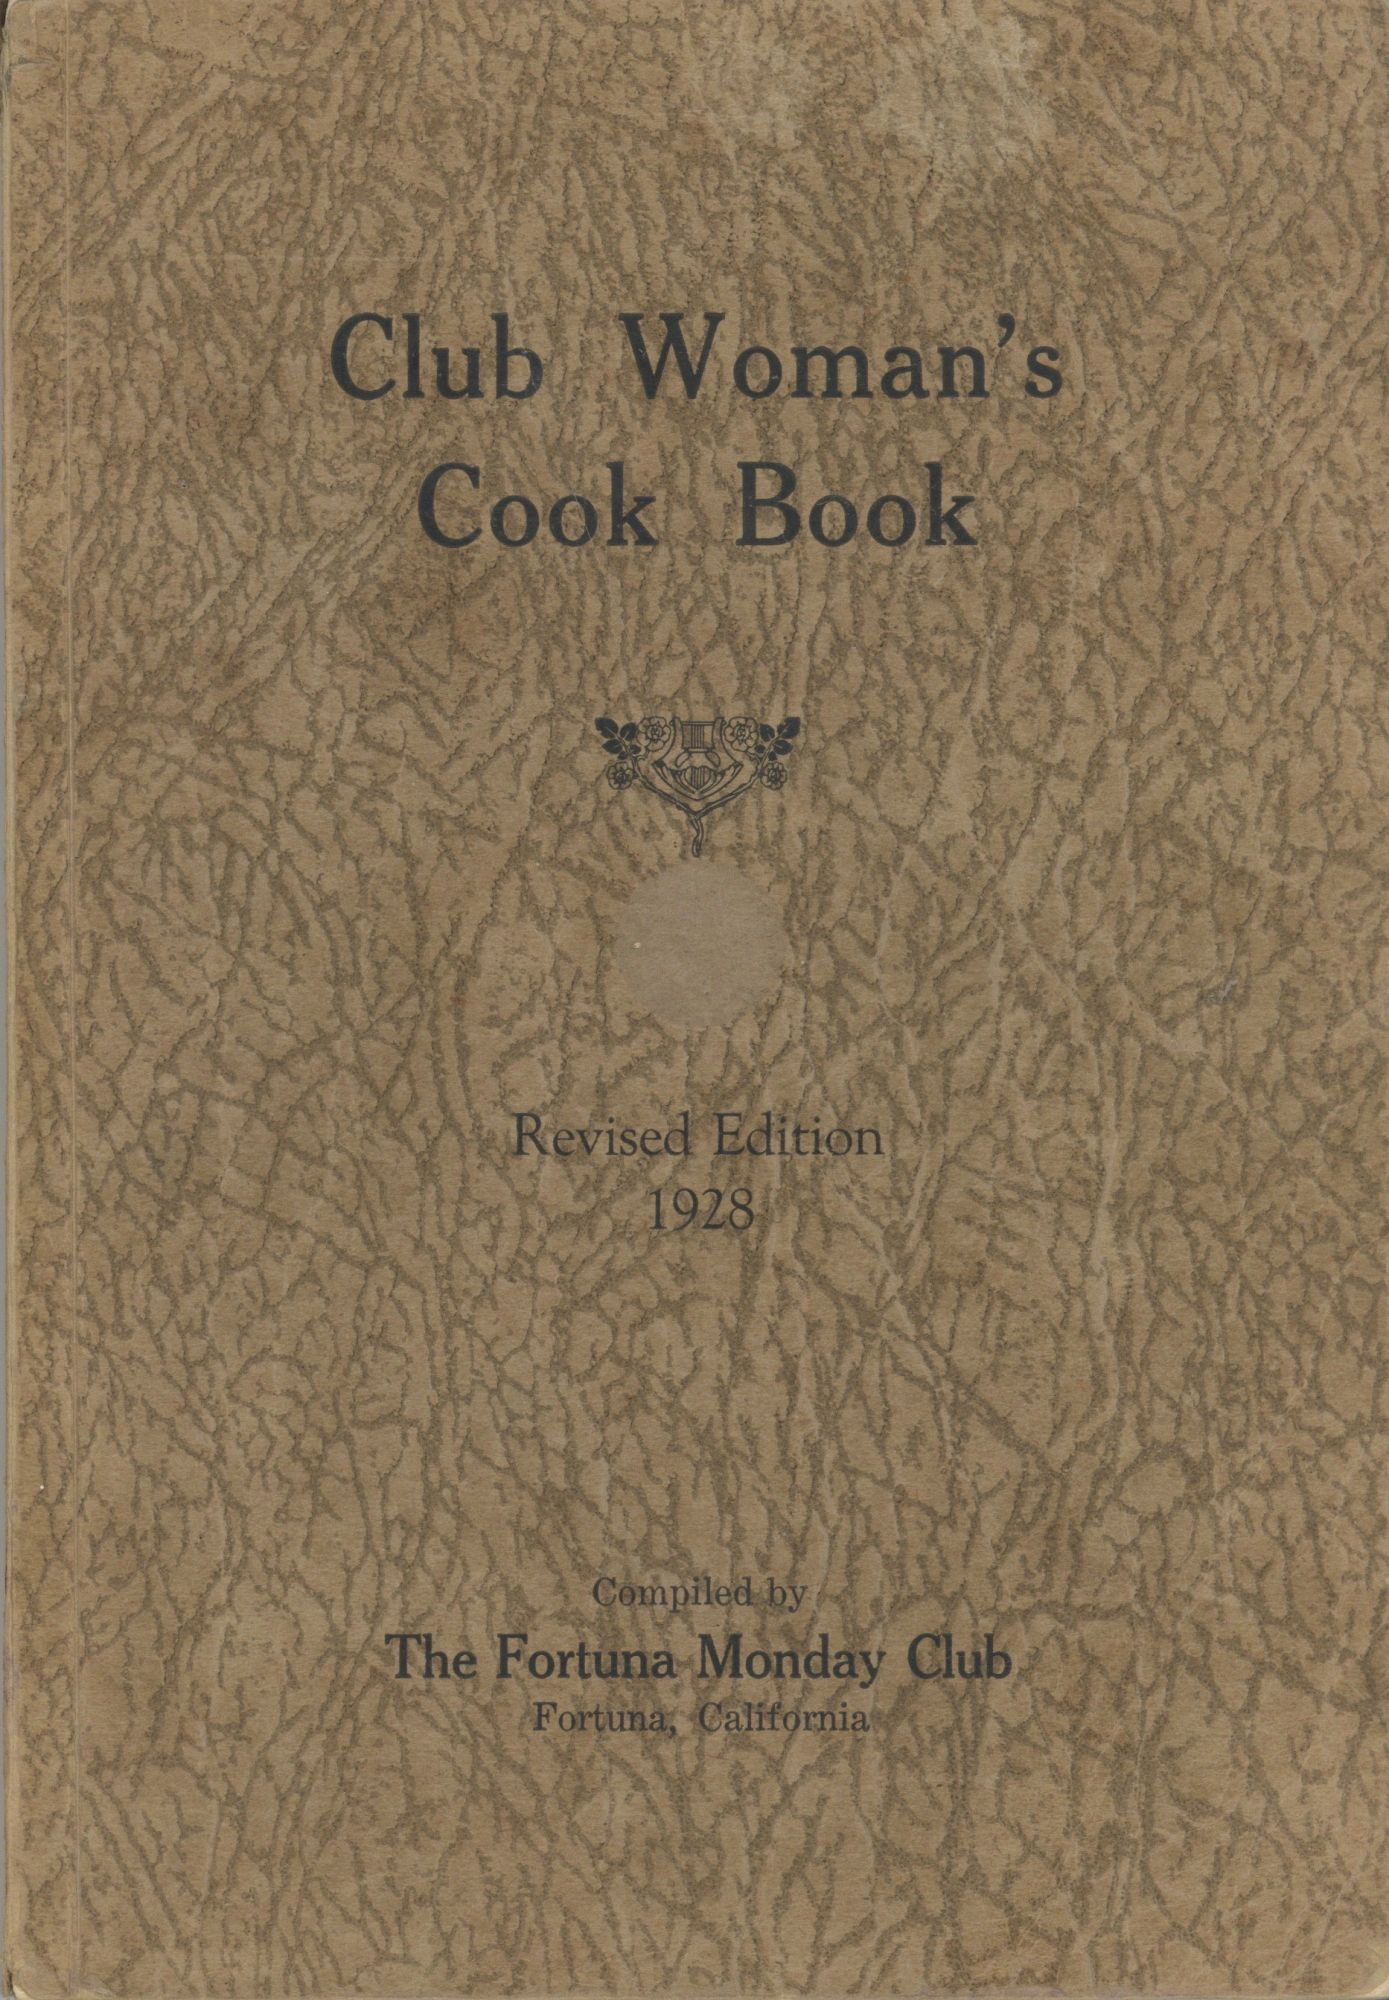 Club Woman's Cook Book. Compiled by The Fortuna Monday Club. Revised edition. Fortuna Monday Club . Committee in Charge, Calif Fortuna.